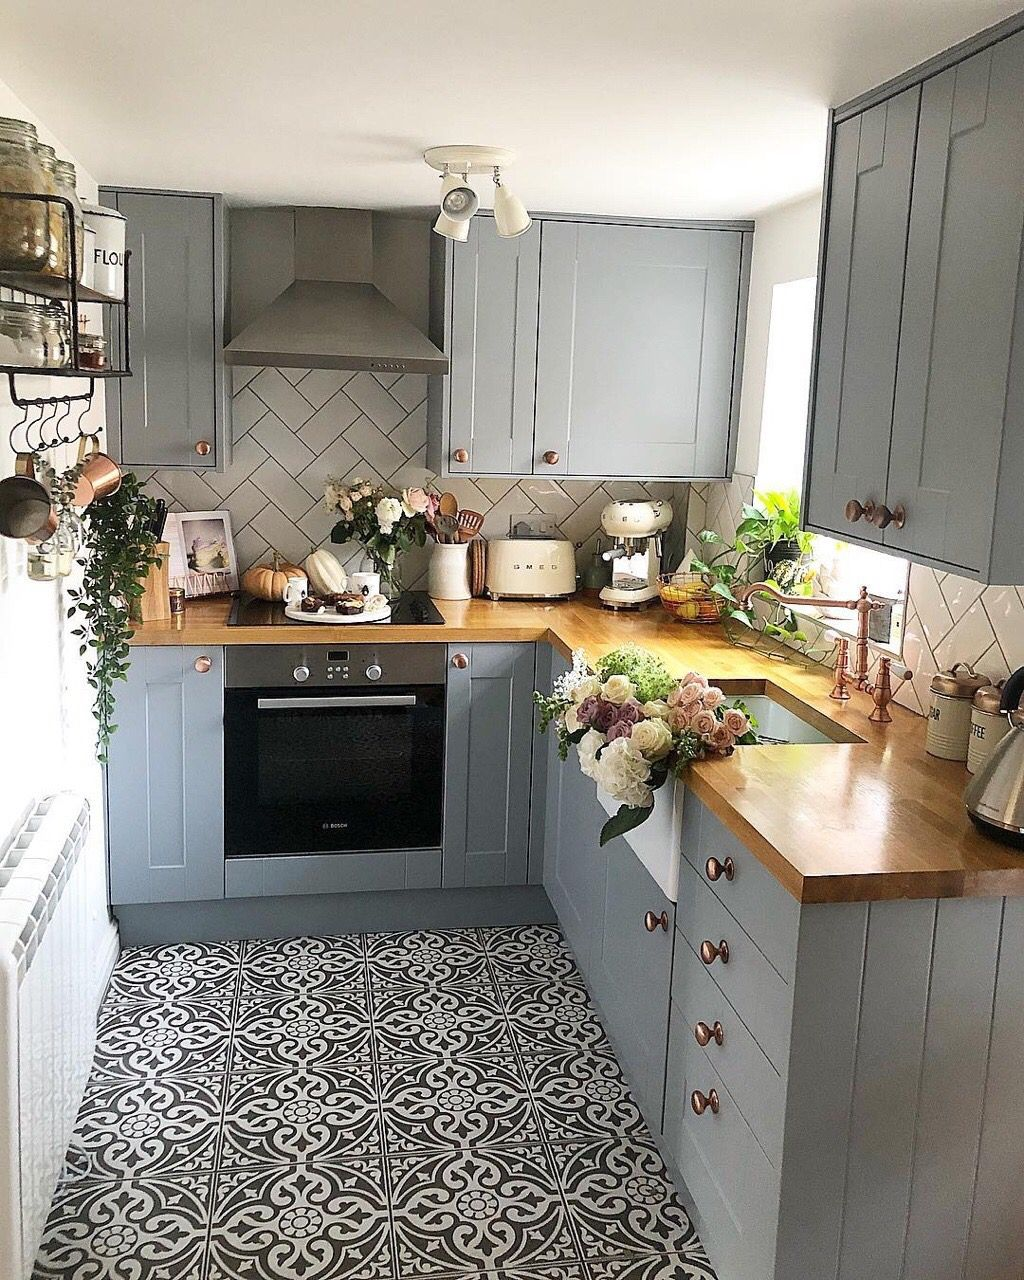 Saving Mostly Just For The Rack On The Left Wall Kitchen Remodel Small Kitchen Design Small Home Decor Kitchen